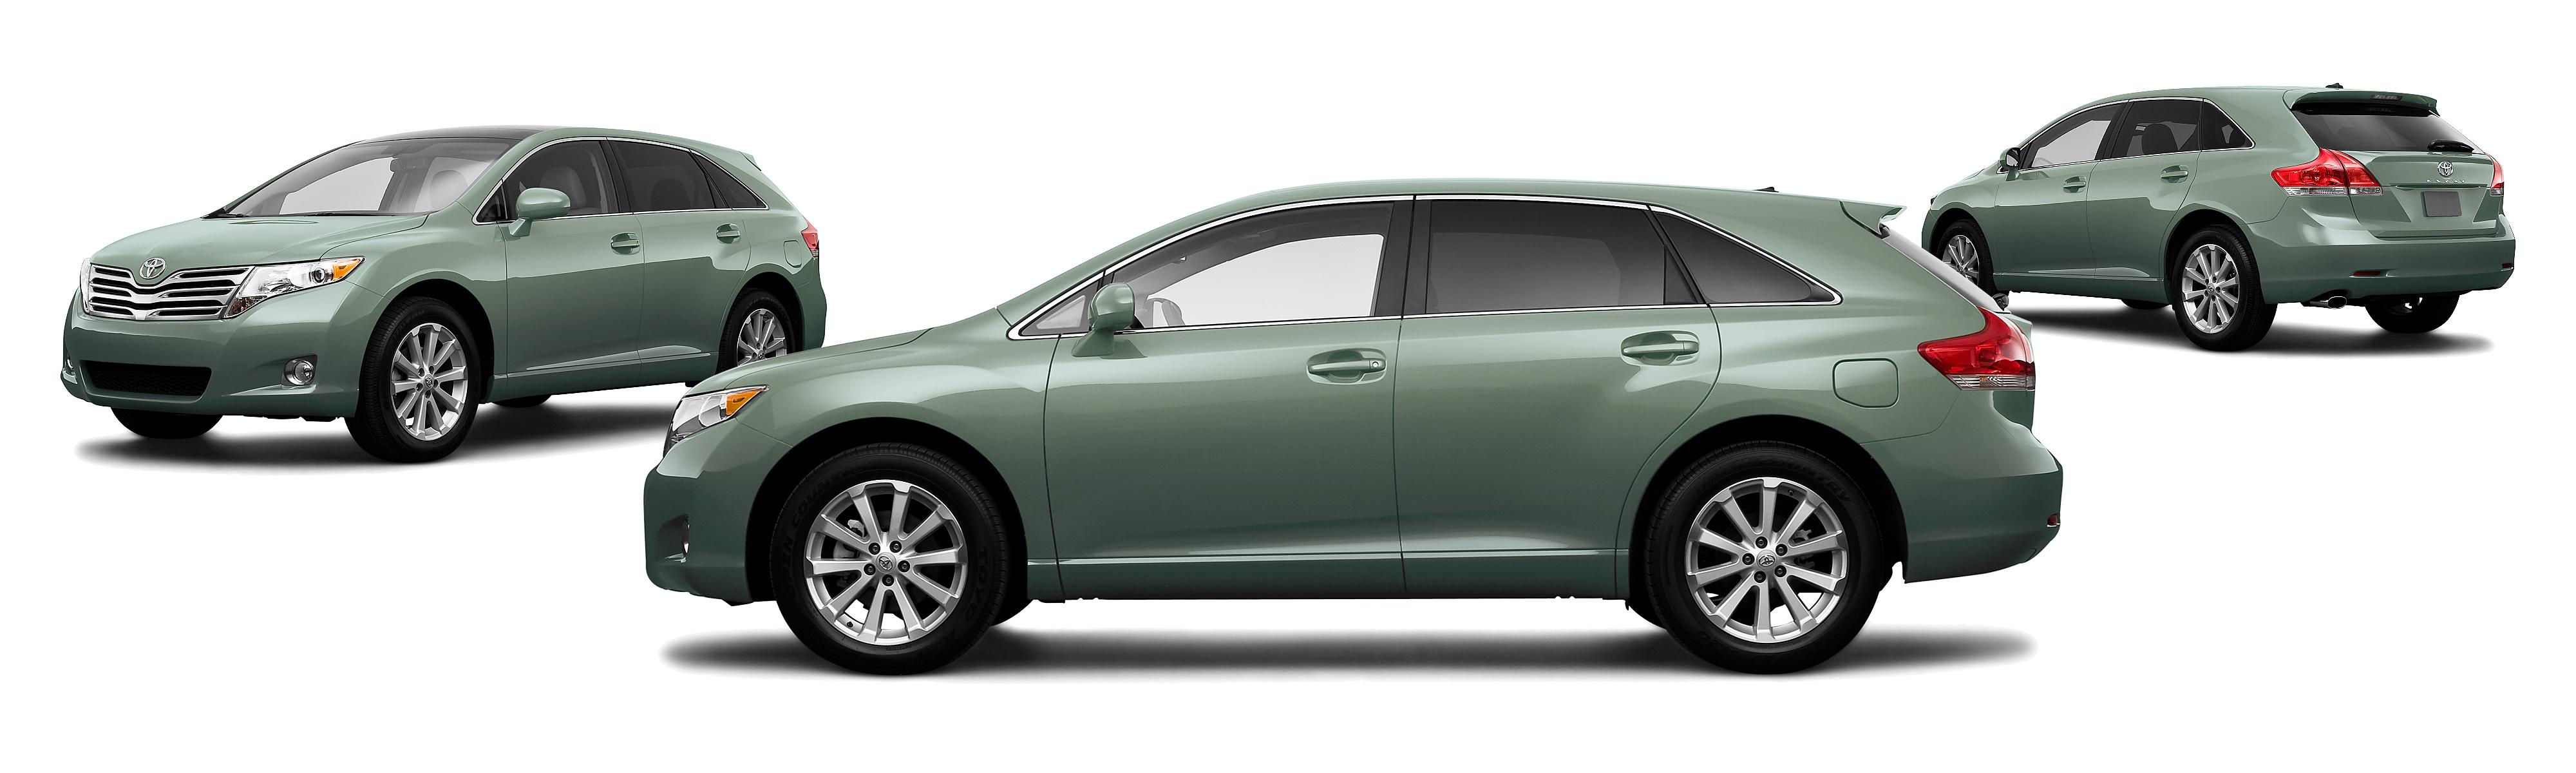 with limited toyota created reviews l driving test venza review road awd rapha suv